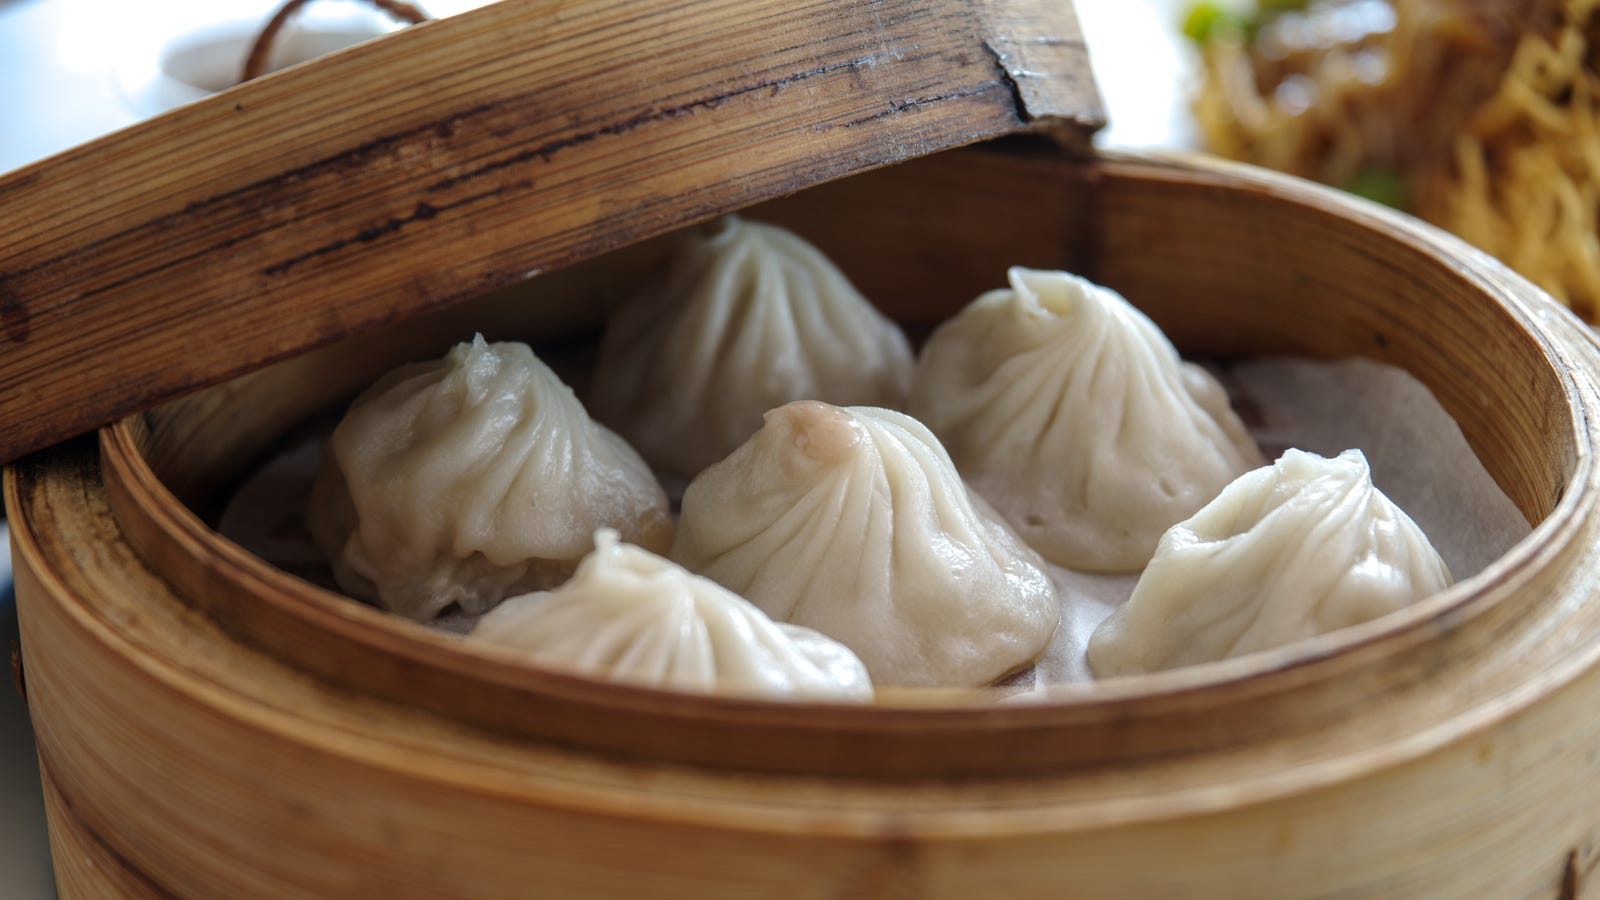 The correct way to eat xiao long bao, the world's most magnificent soup dumplings